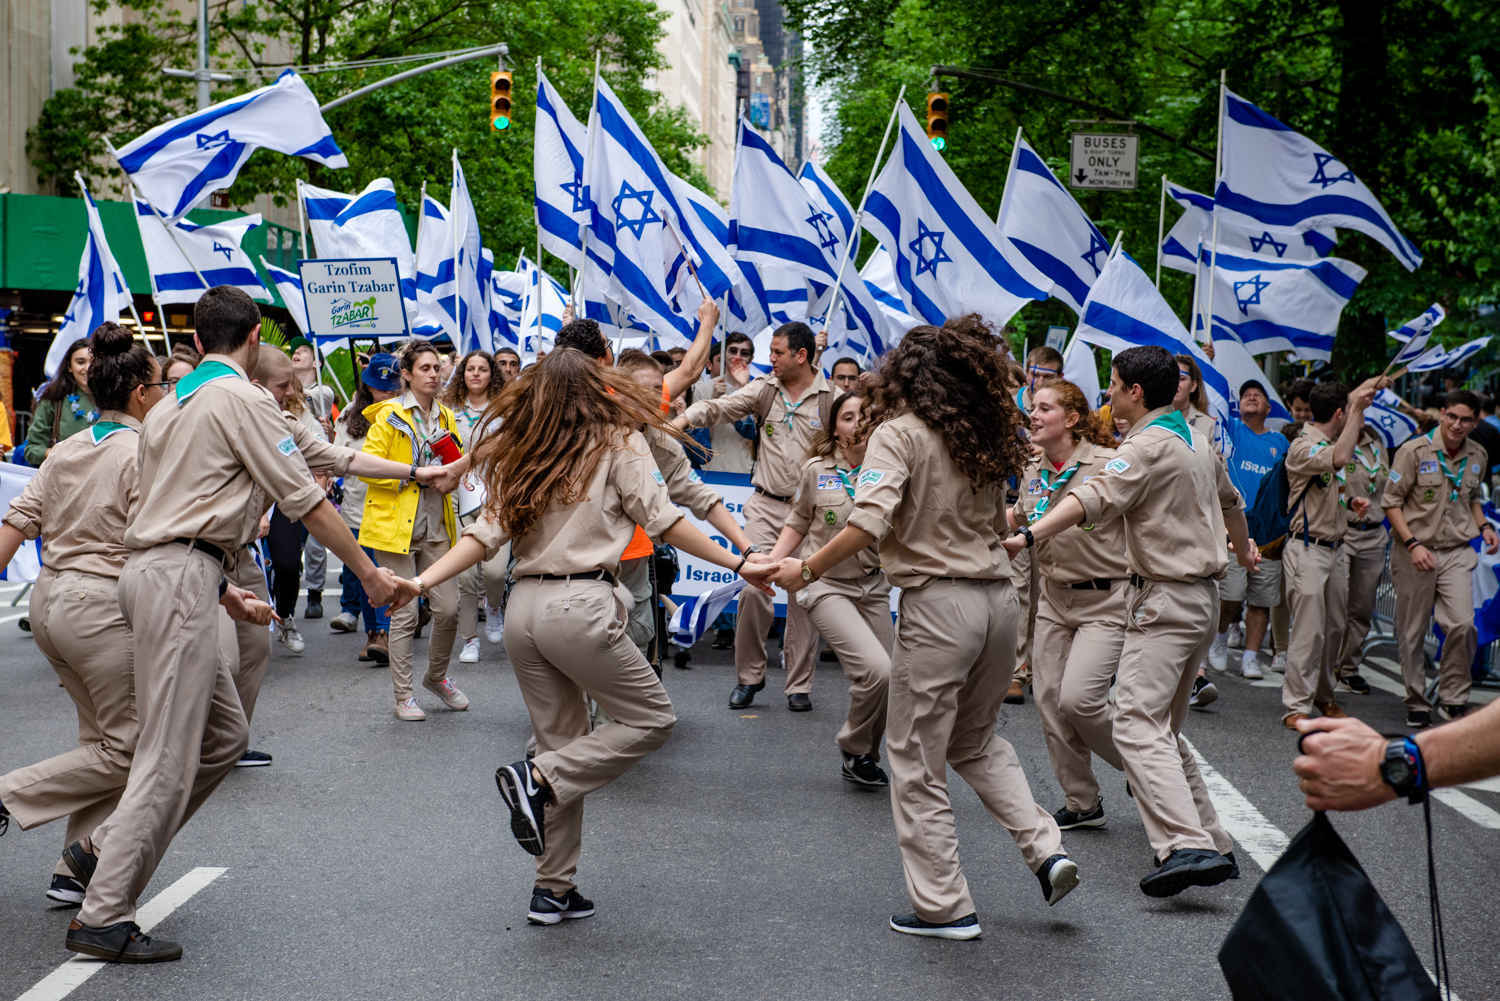 Support Friends of Israel Scouts image